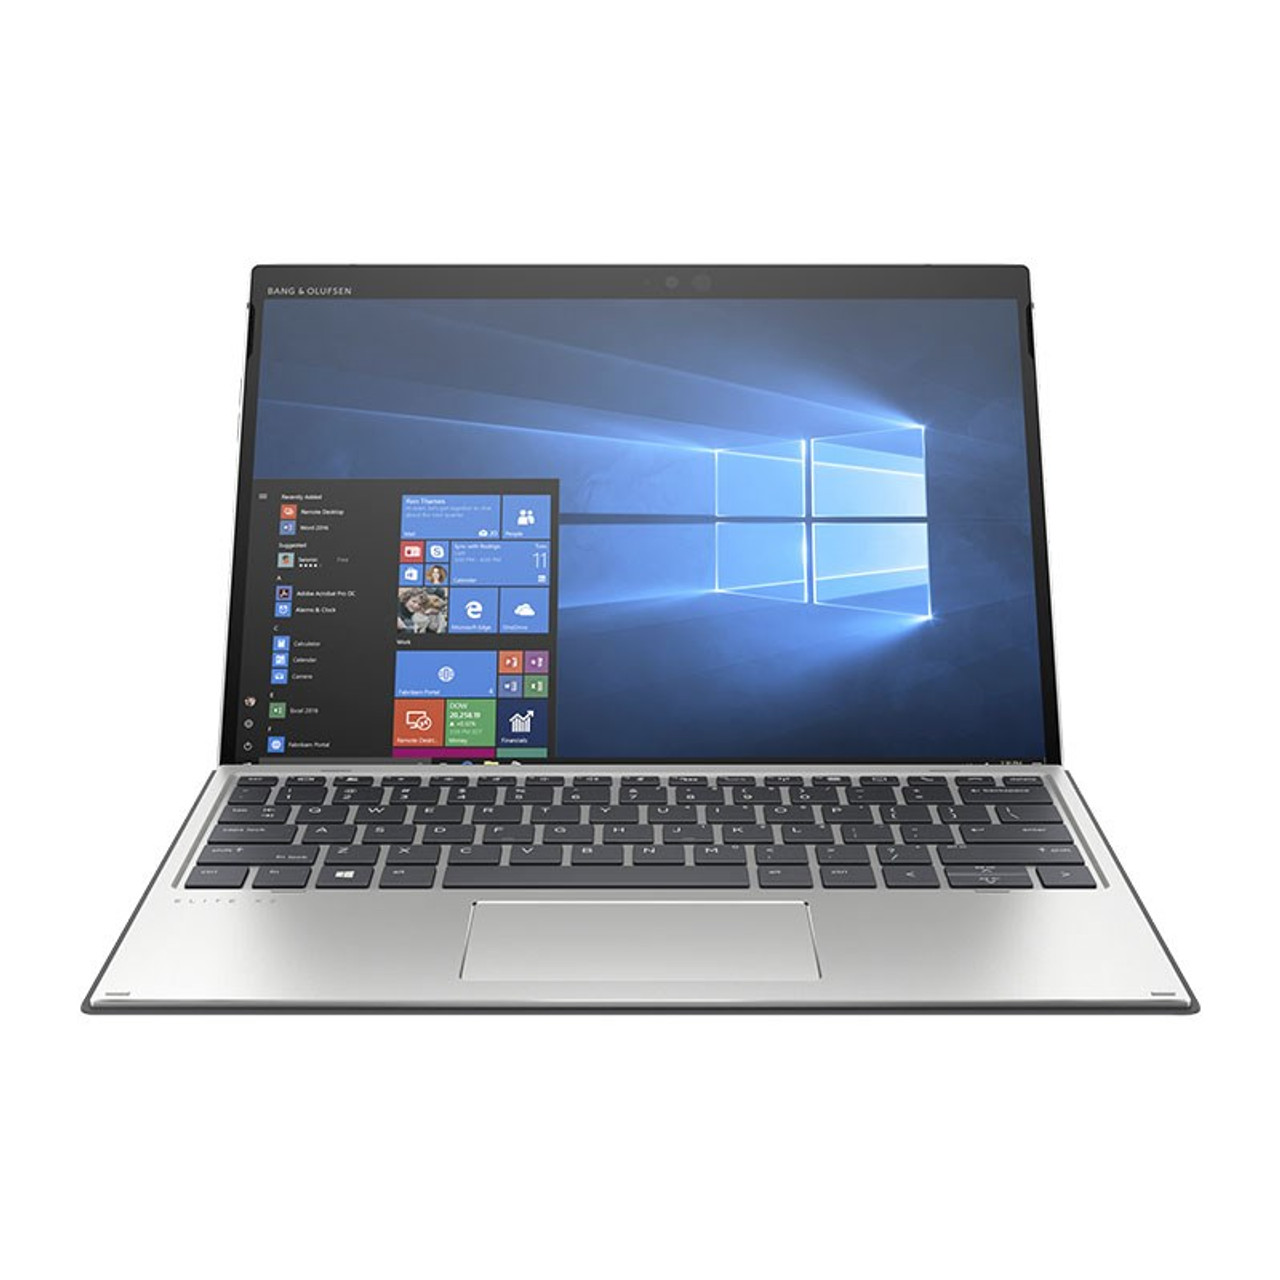 Image for HP Elite x2 G4 13in Tablet i5-8365U 8GB 256GB+32GB W10P Touch - Pen + Keyboard CX Computer Superstore